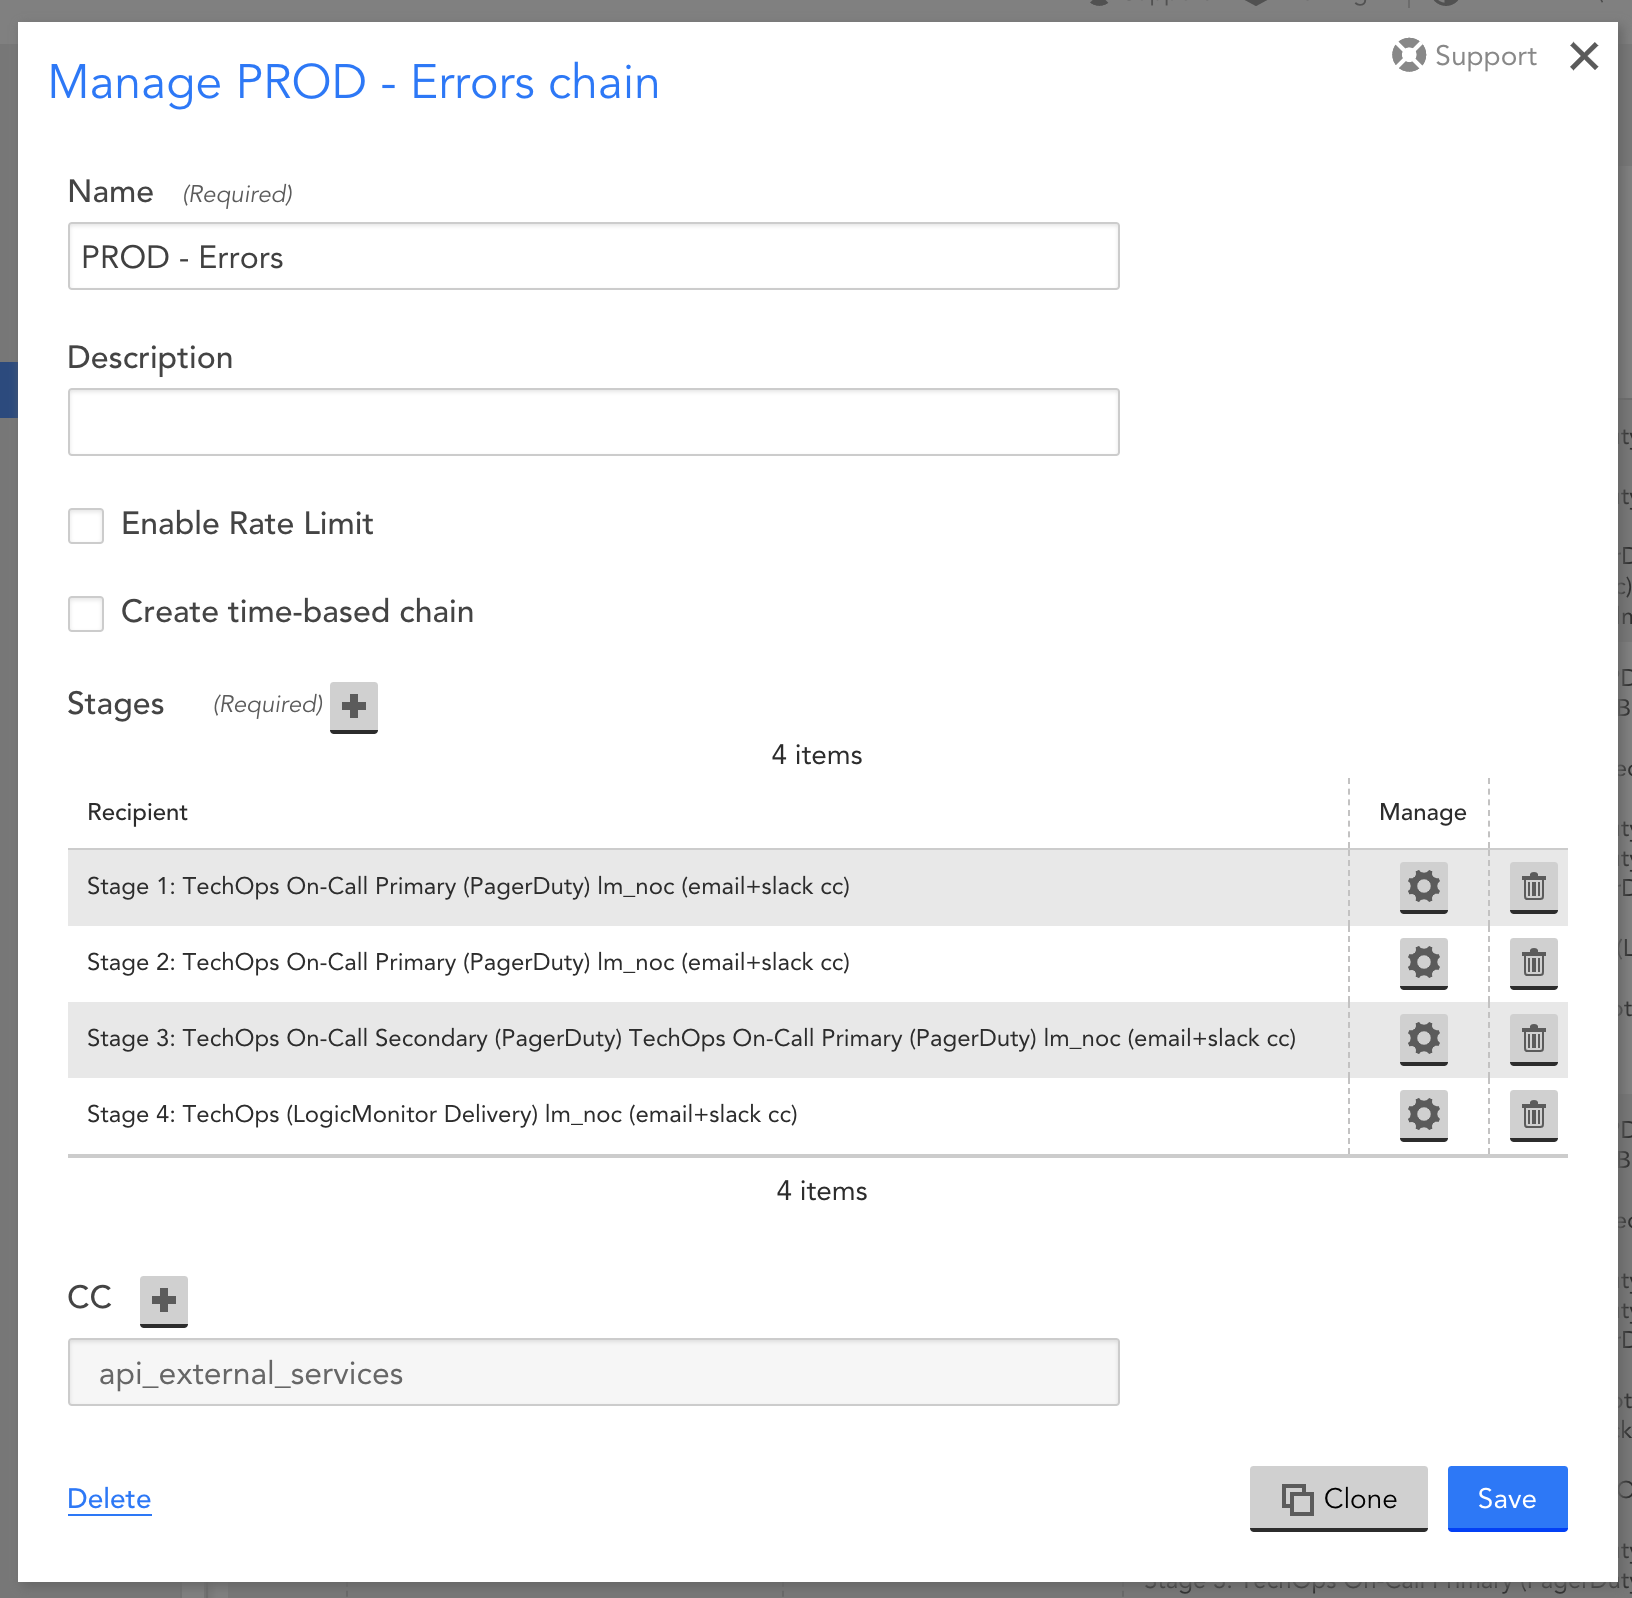 Escalation chain with the last stage not including PagerDuty in case of failure